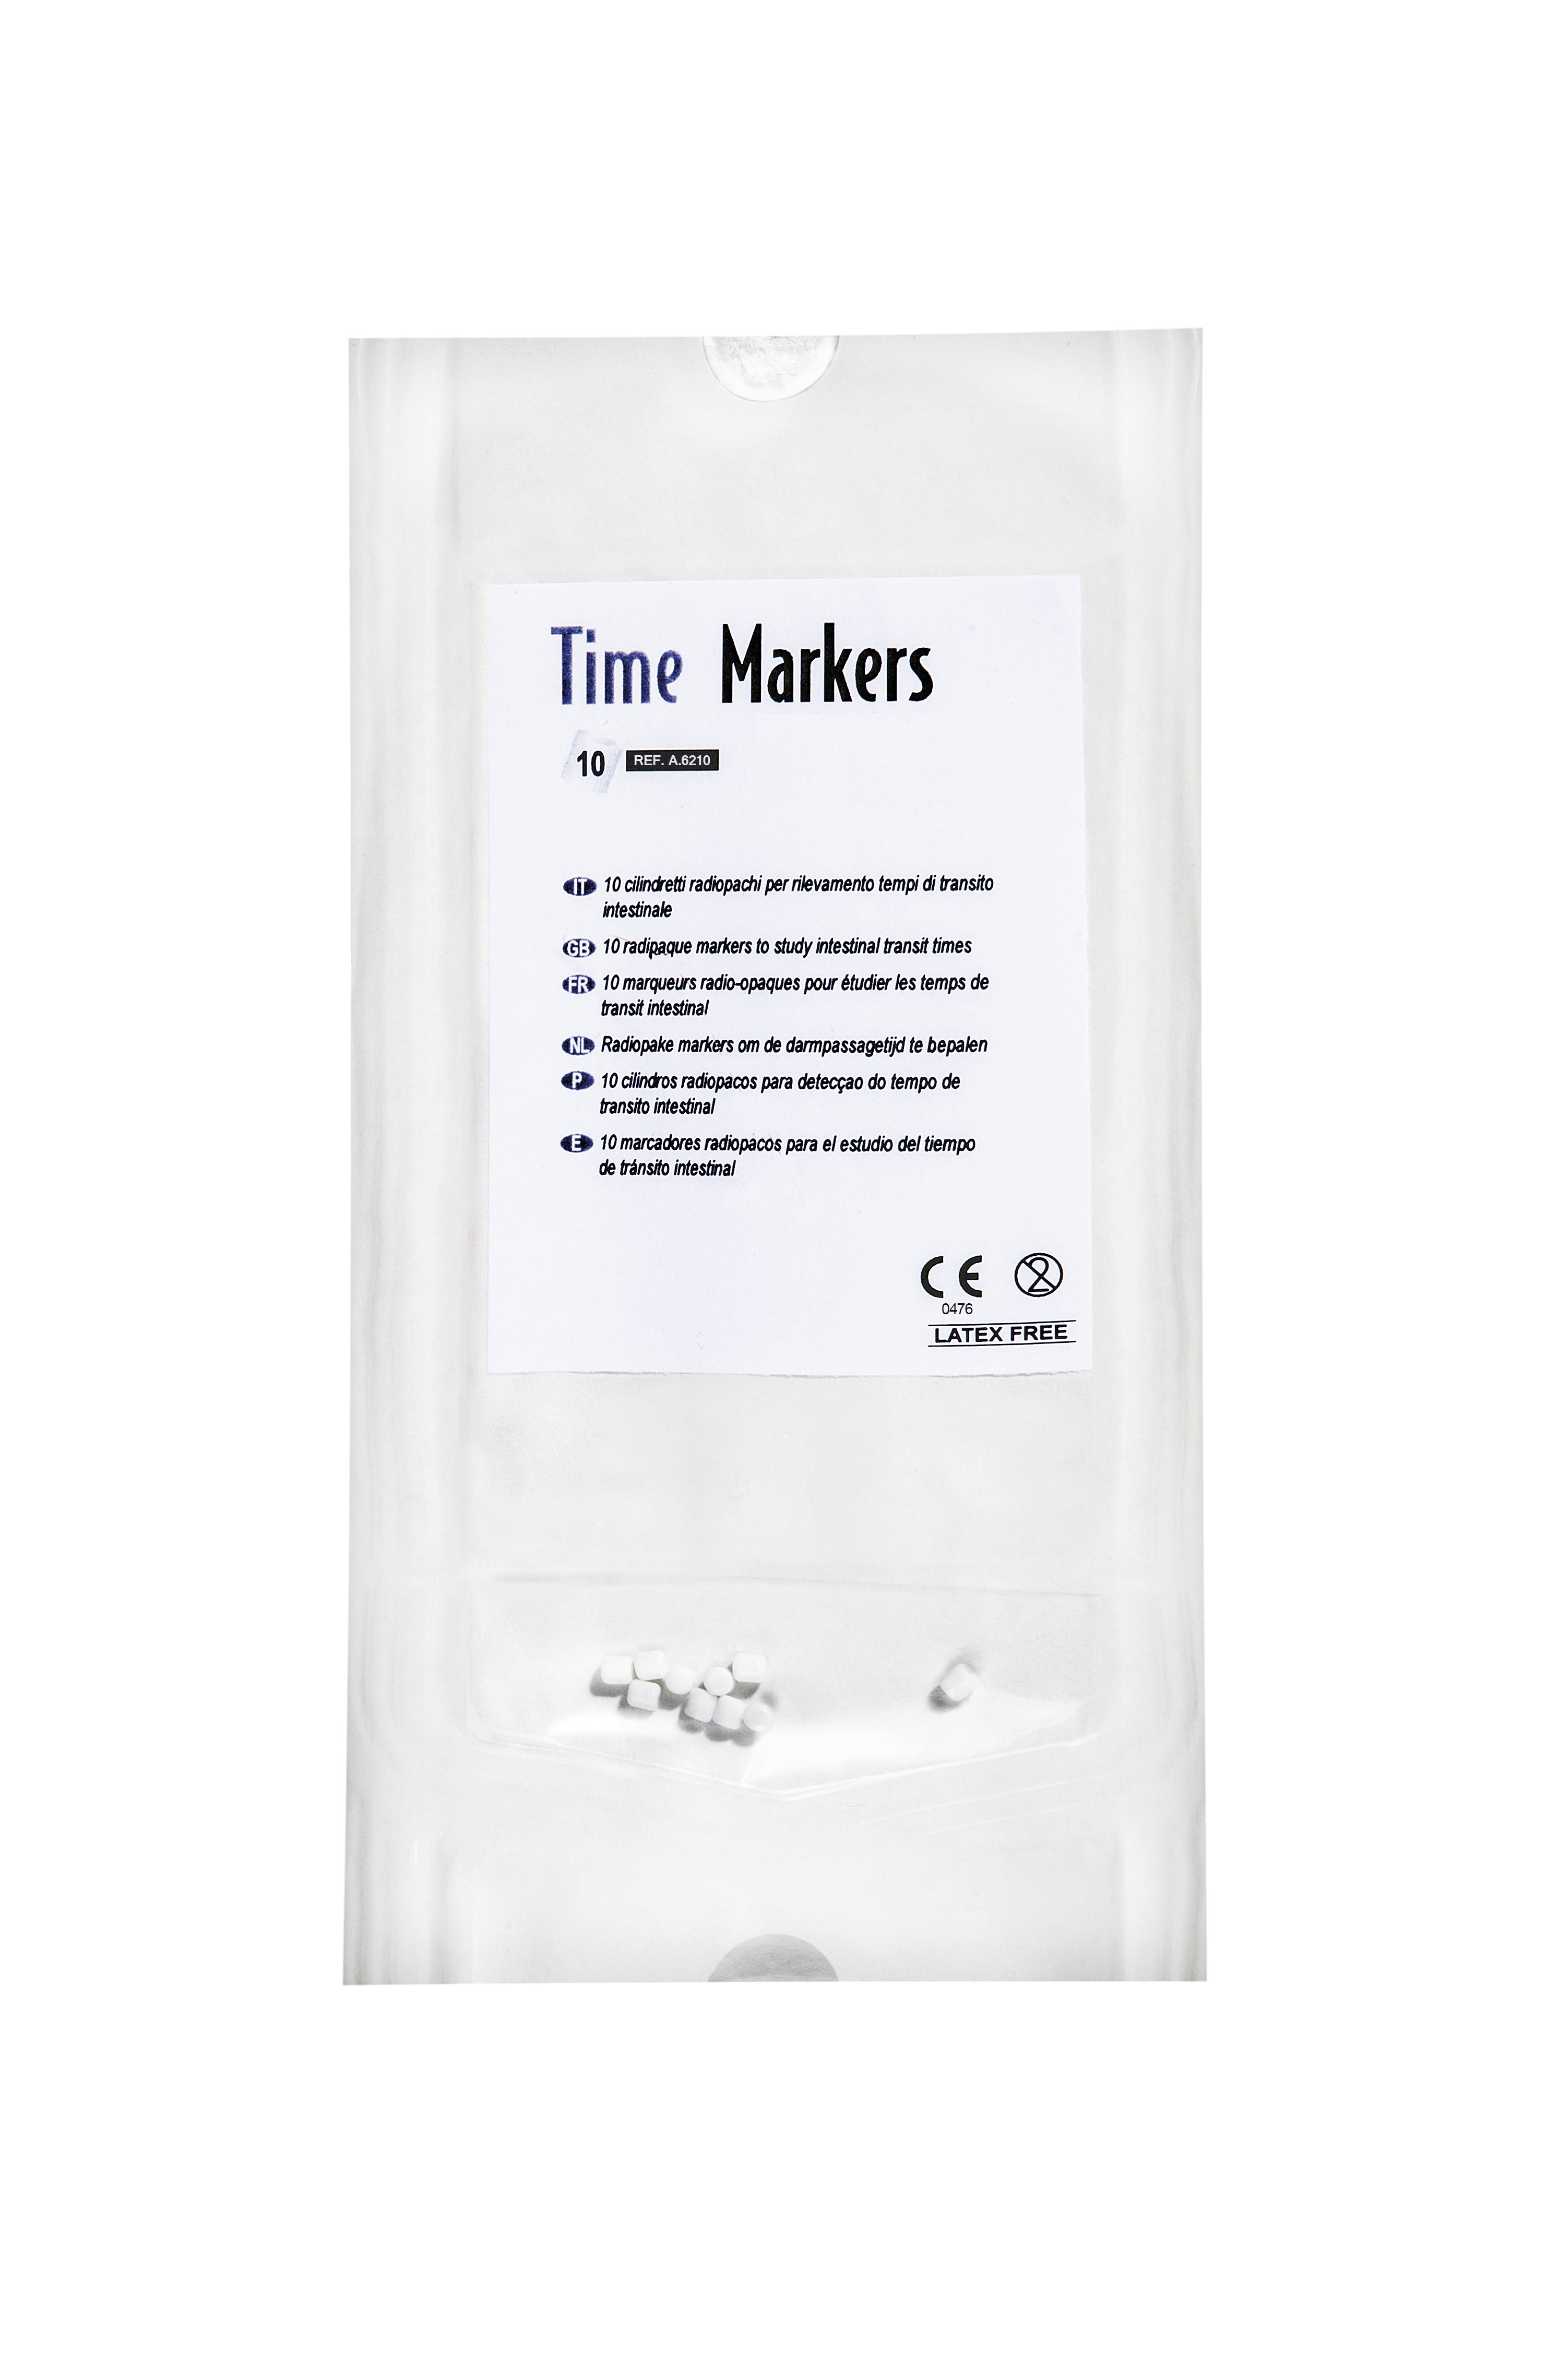 Time markers